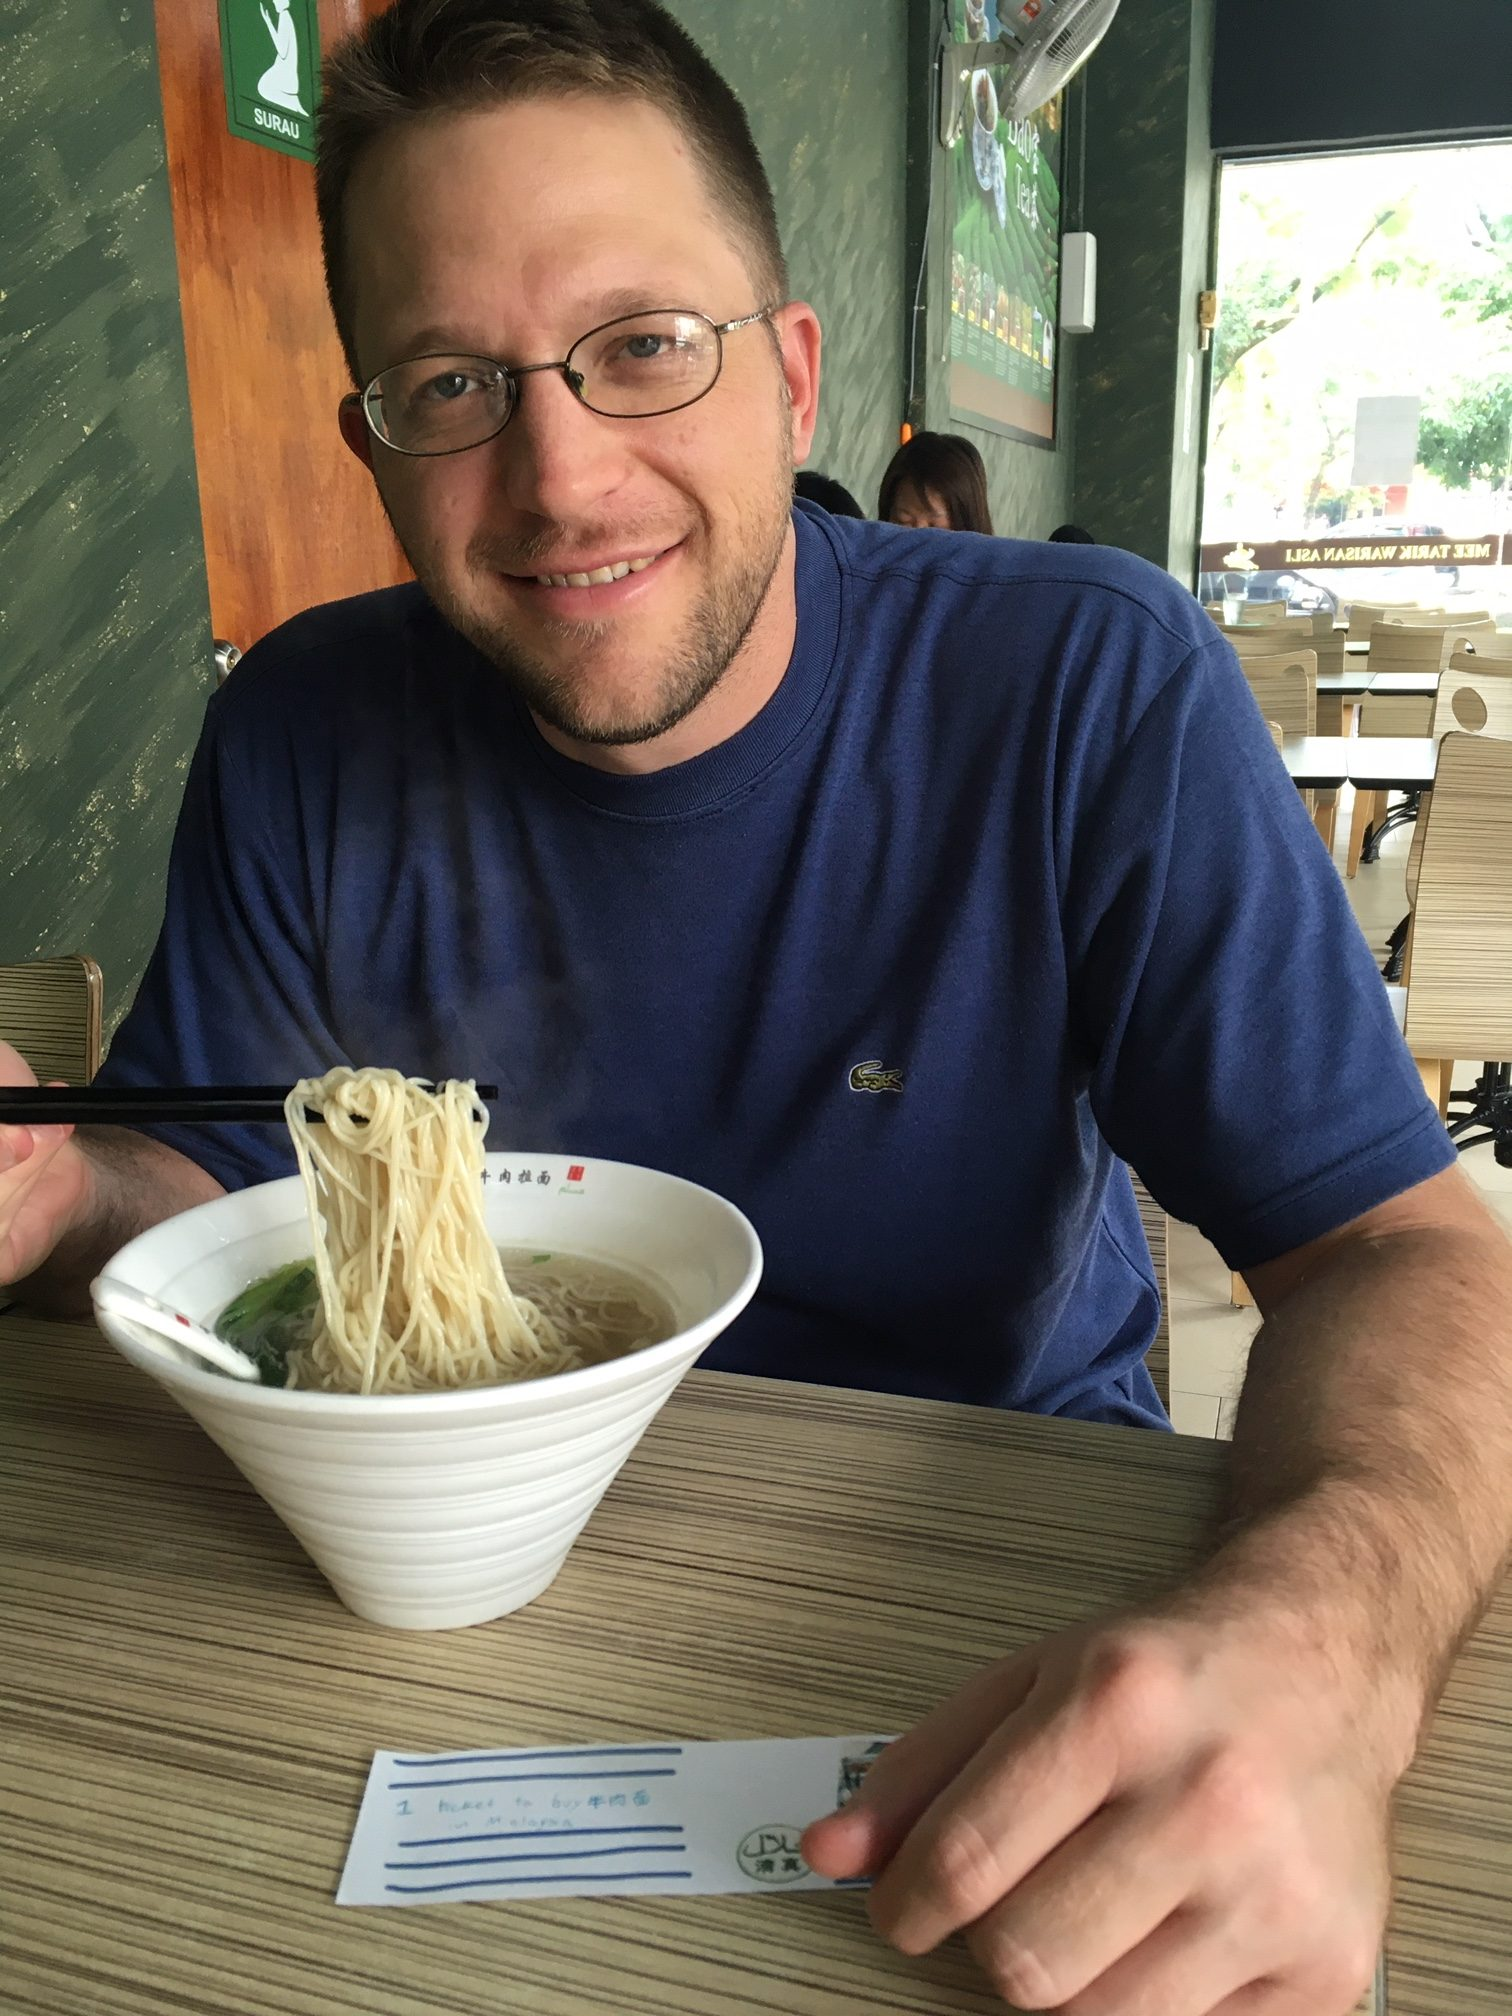 Ben with pulled noodles